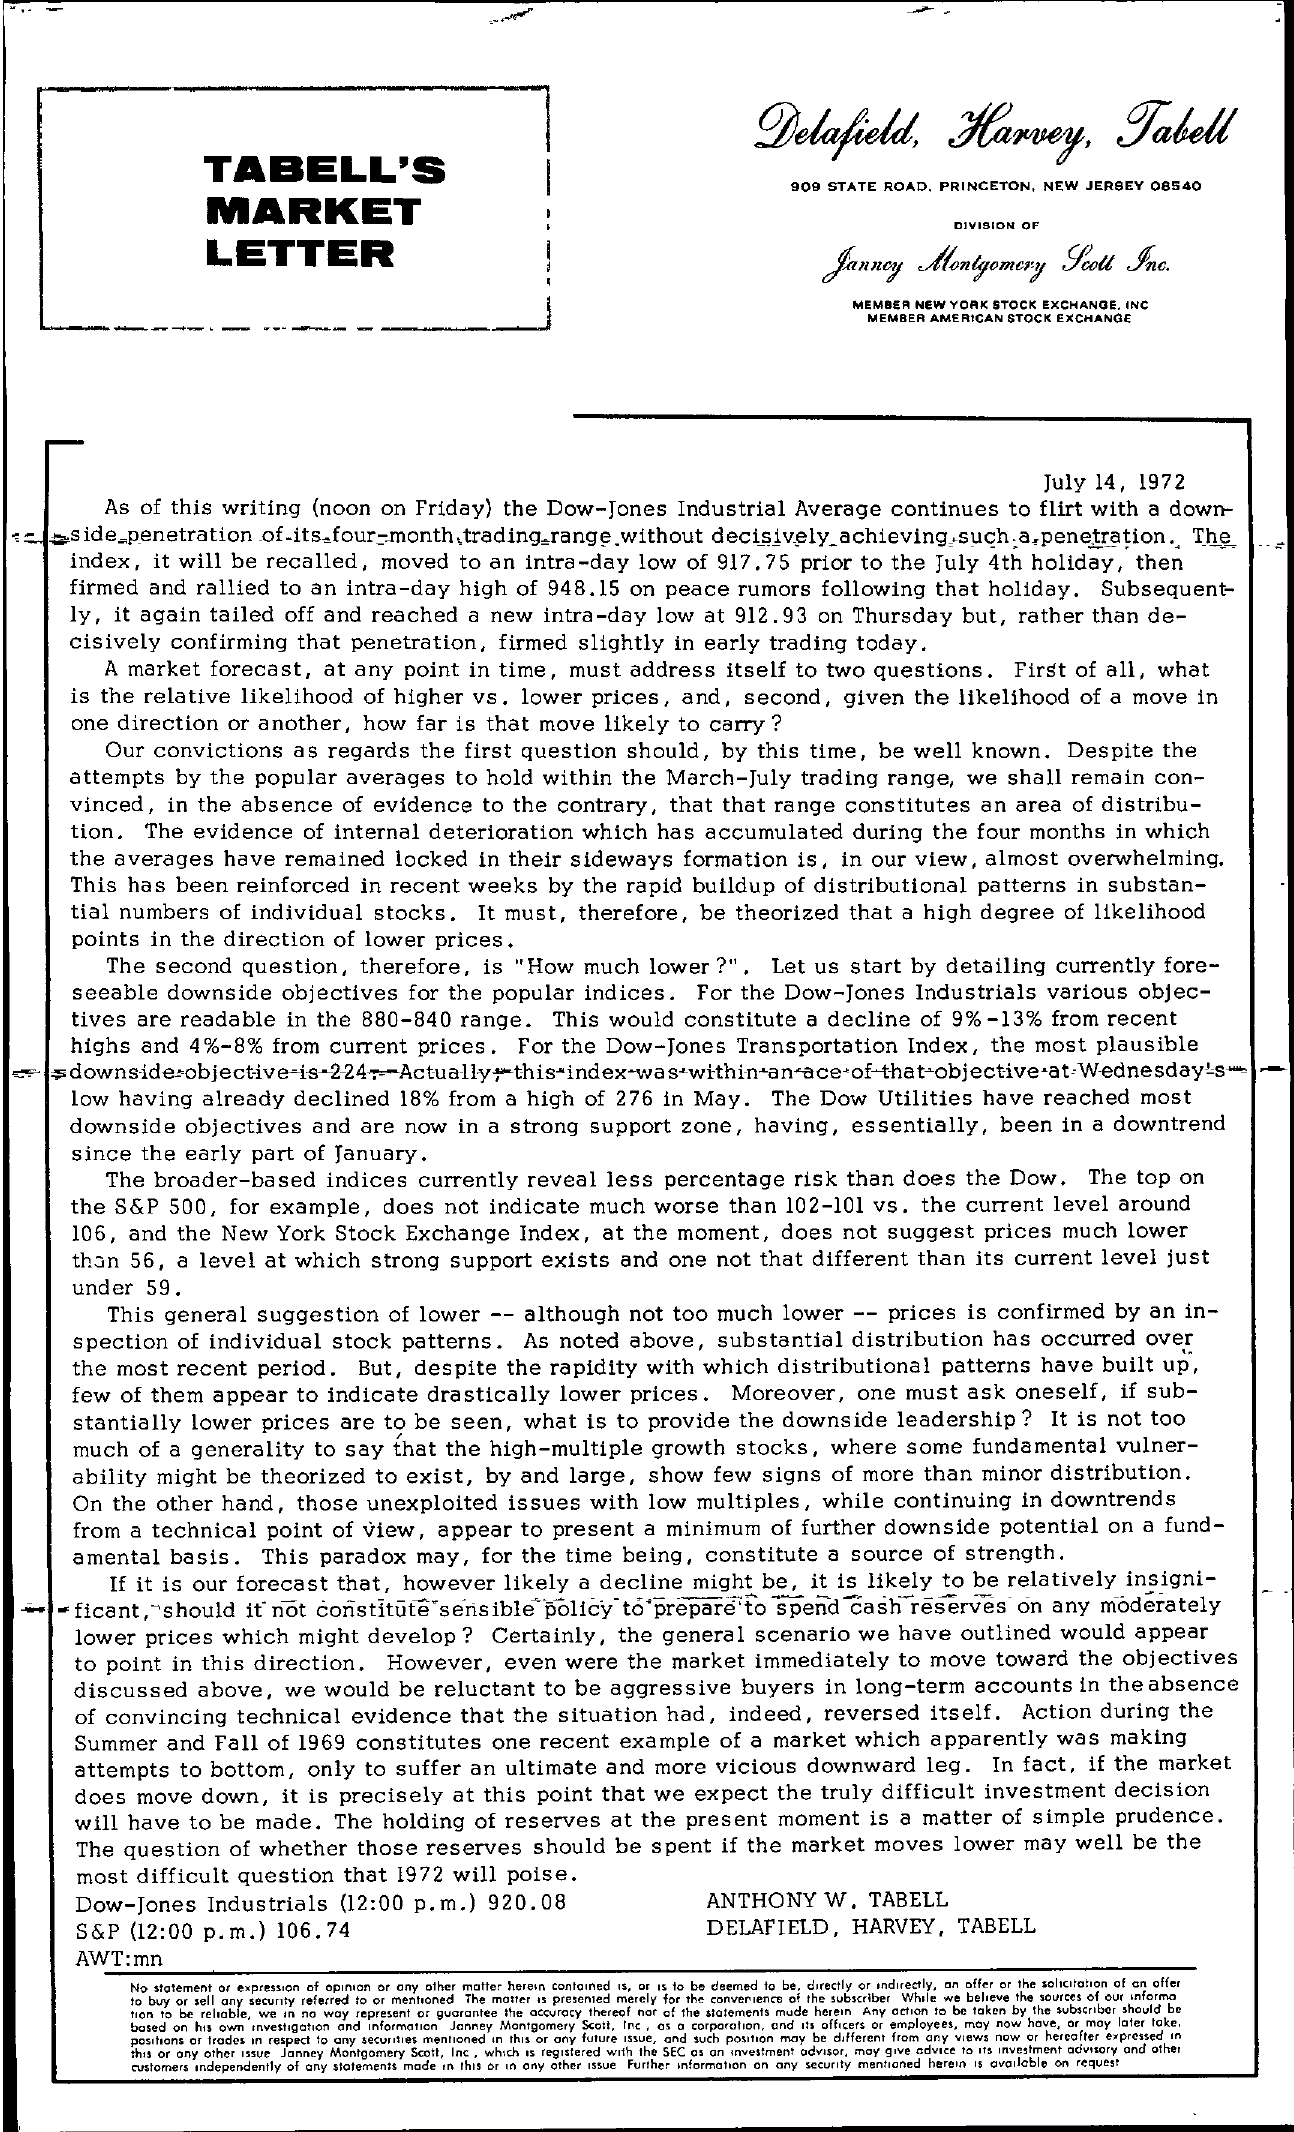 Tabell's Market Letter - July 14, 1972